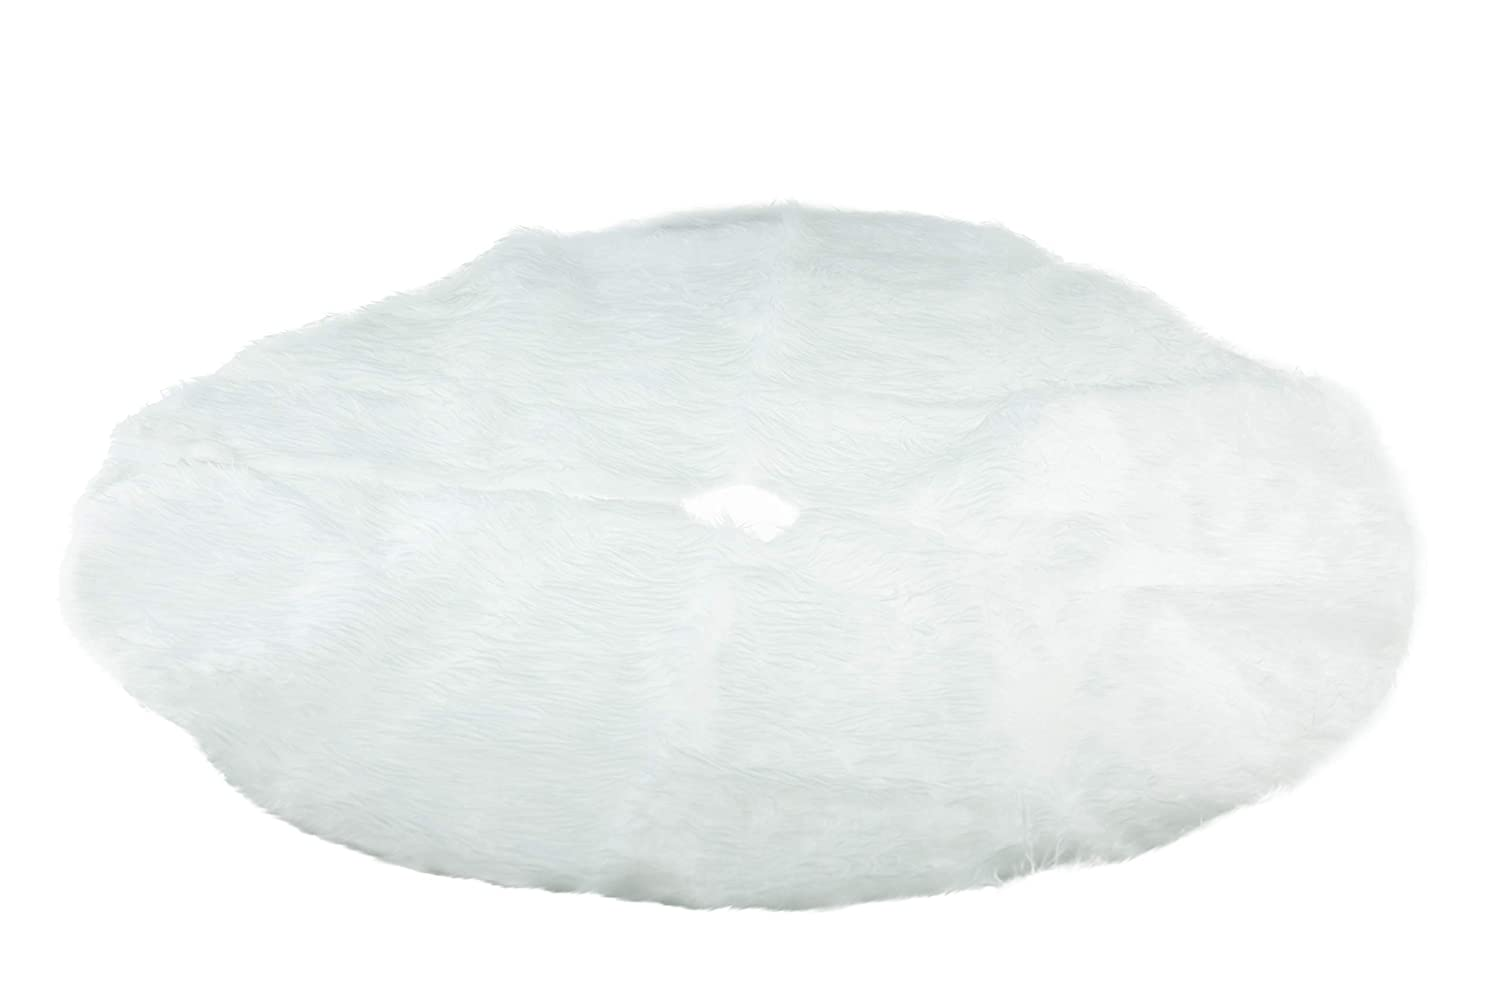 Clever Creations White Faux Fur Tree Skirt Pure Snow White Color | Festive Holiday Design | Tie Closure | Helps Contain Needle & Sap Mess on Floors | 30